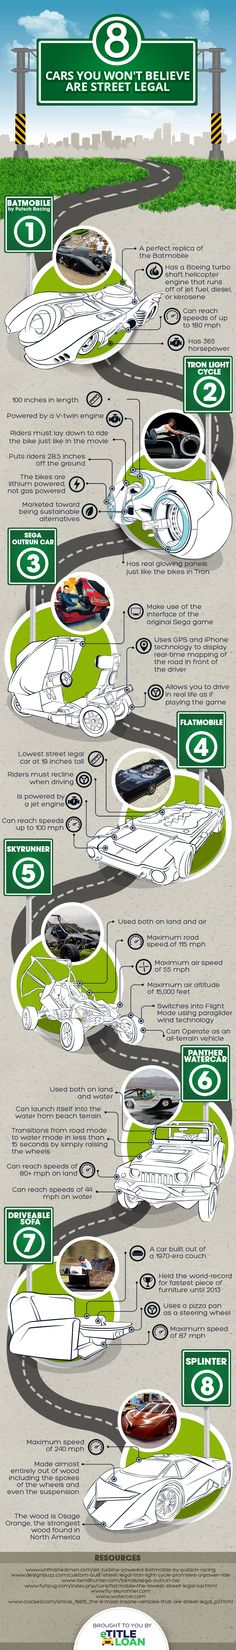 8 Cars You Won't Believe are Street Legal #infographic